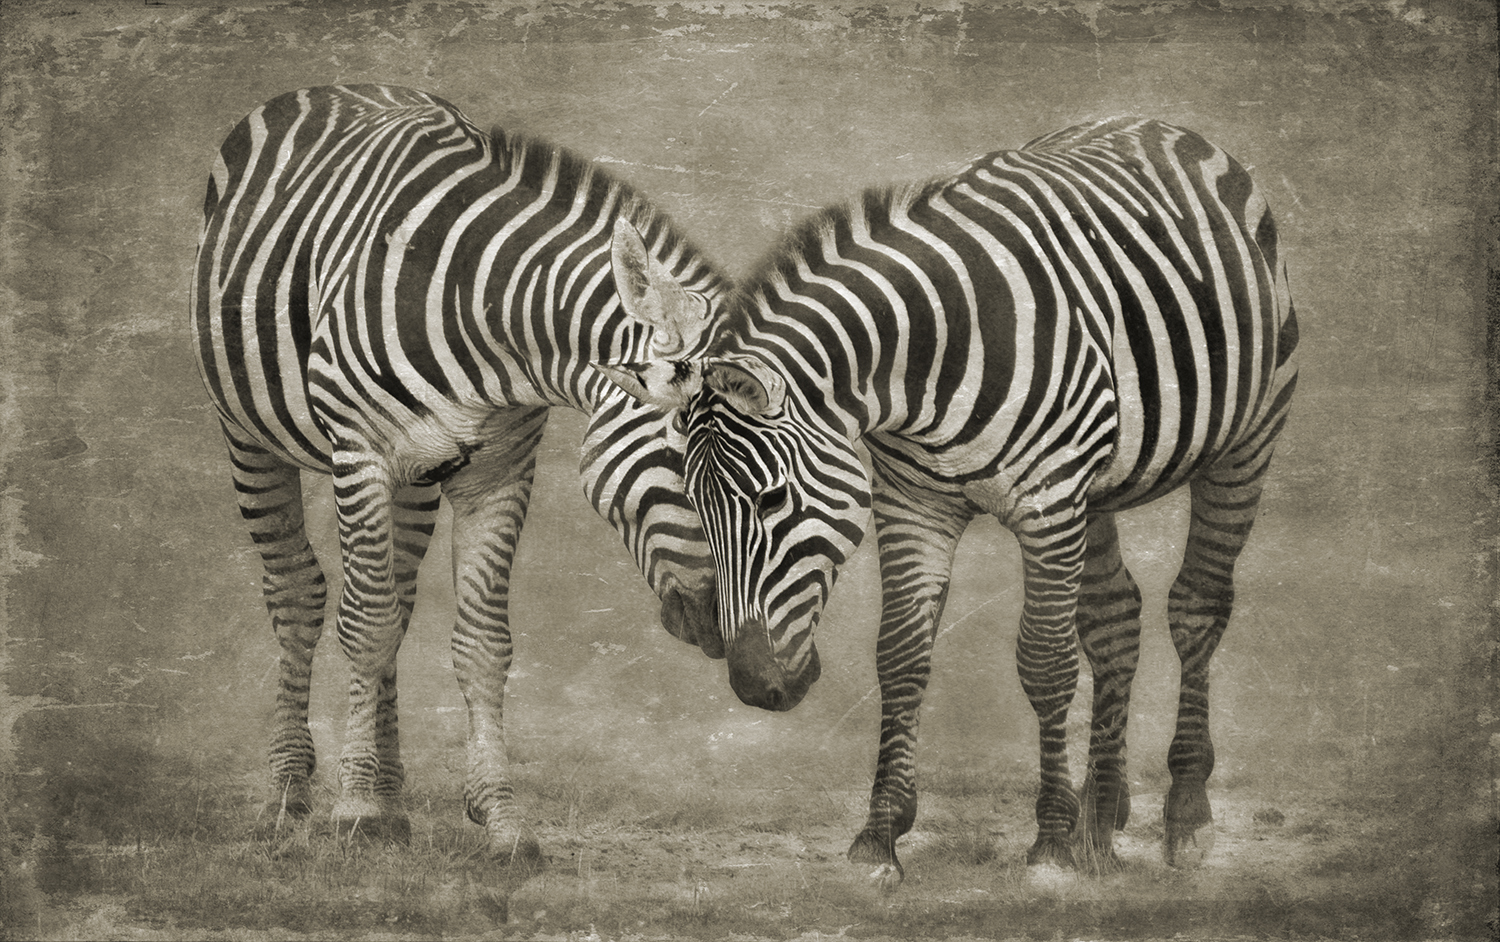 ZEBRAS HEAD TO HEAD copy.jpg